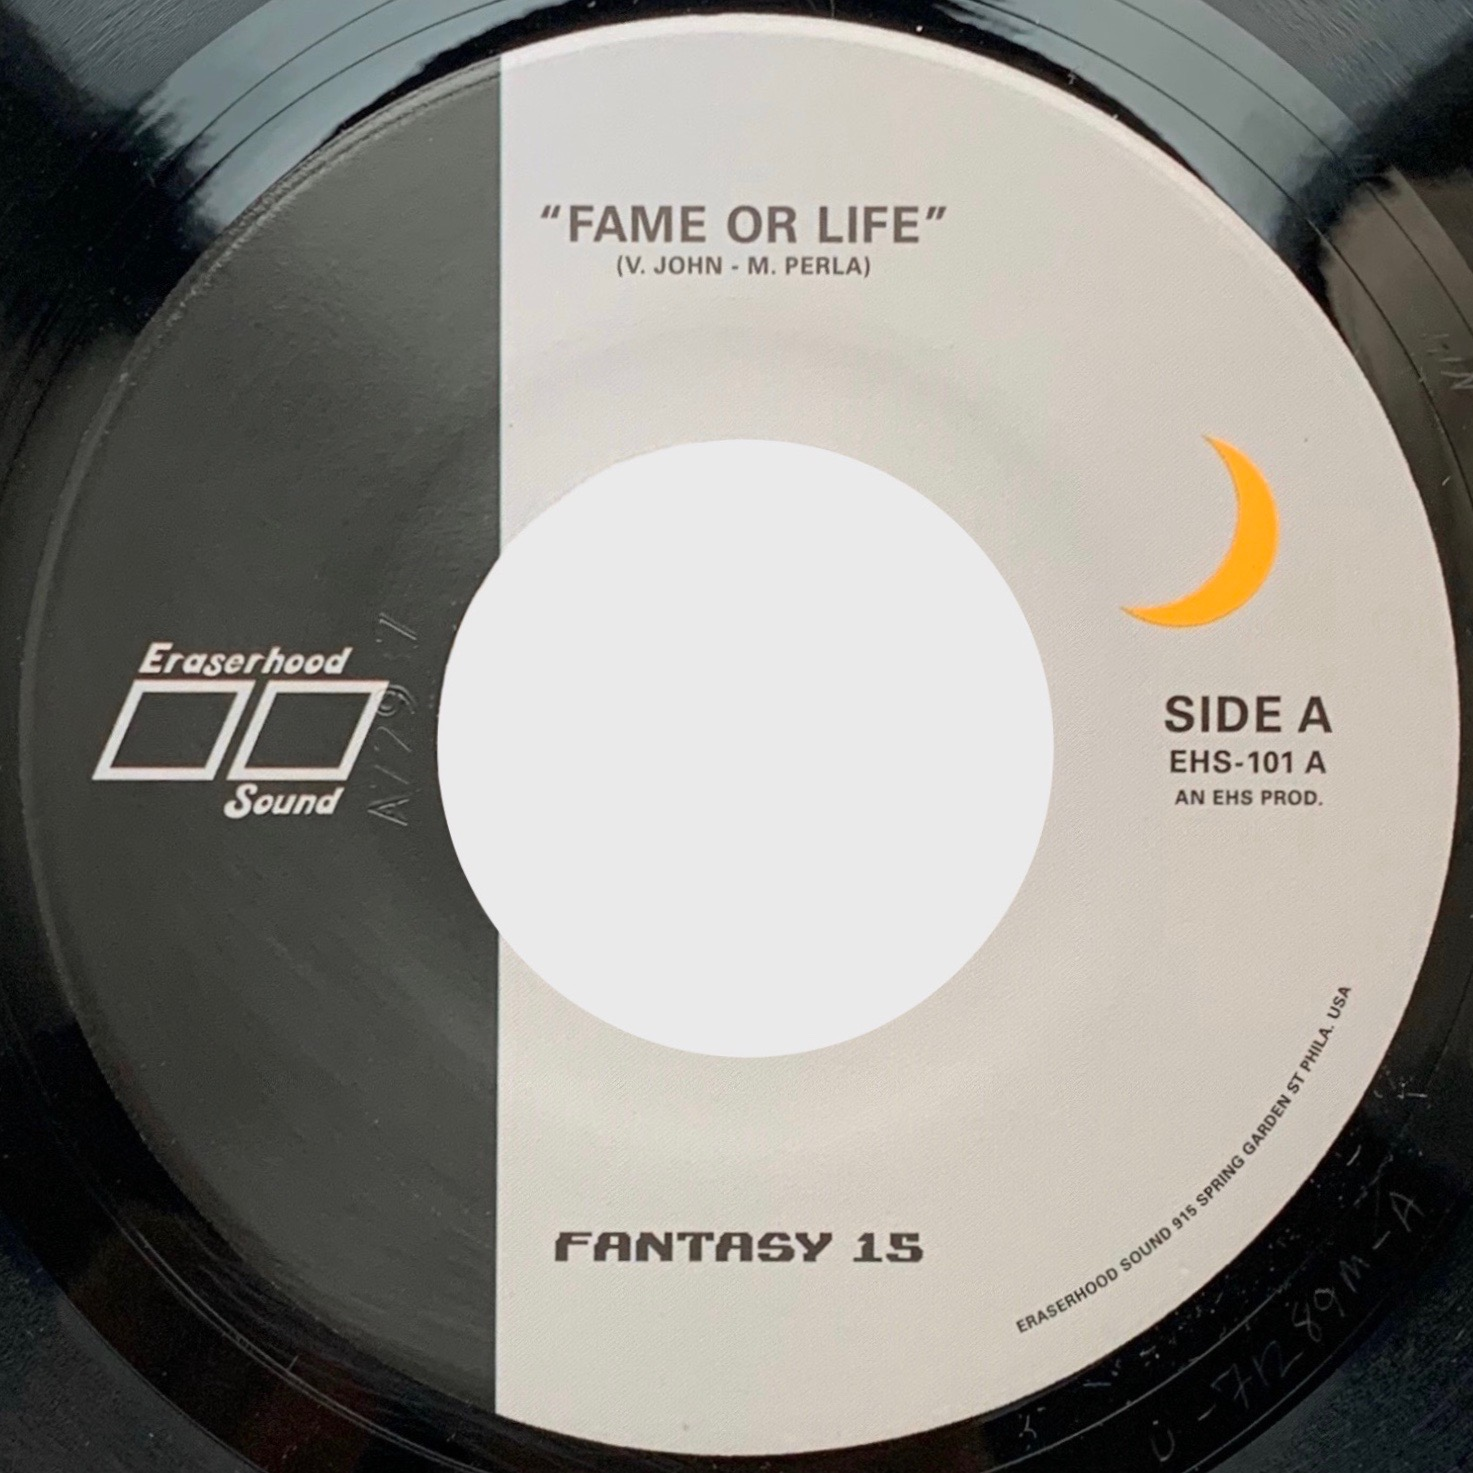 Fantasy 15 - FAME OR LIFE b/w THE MENACE